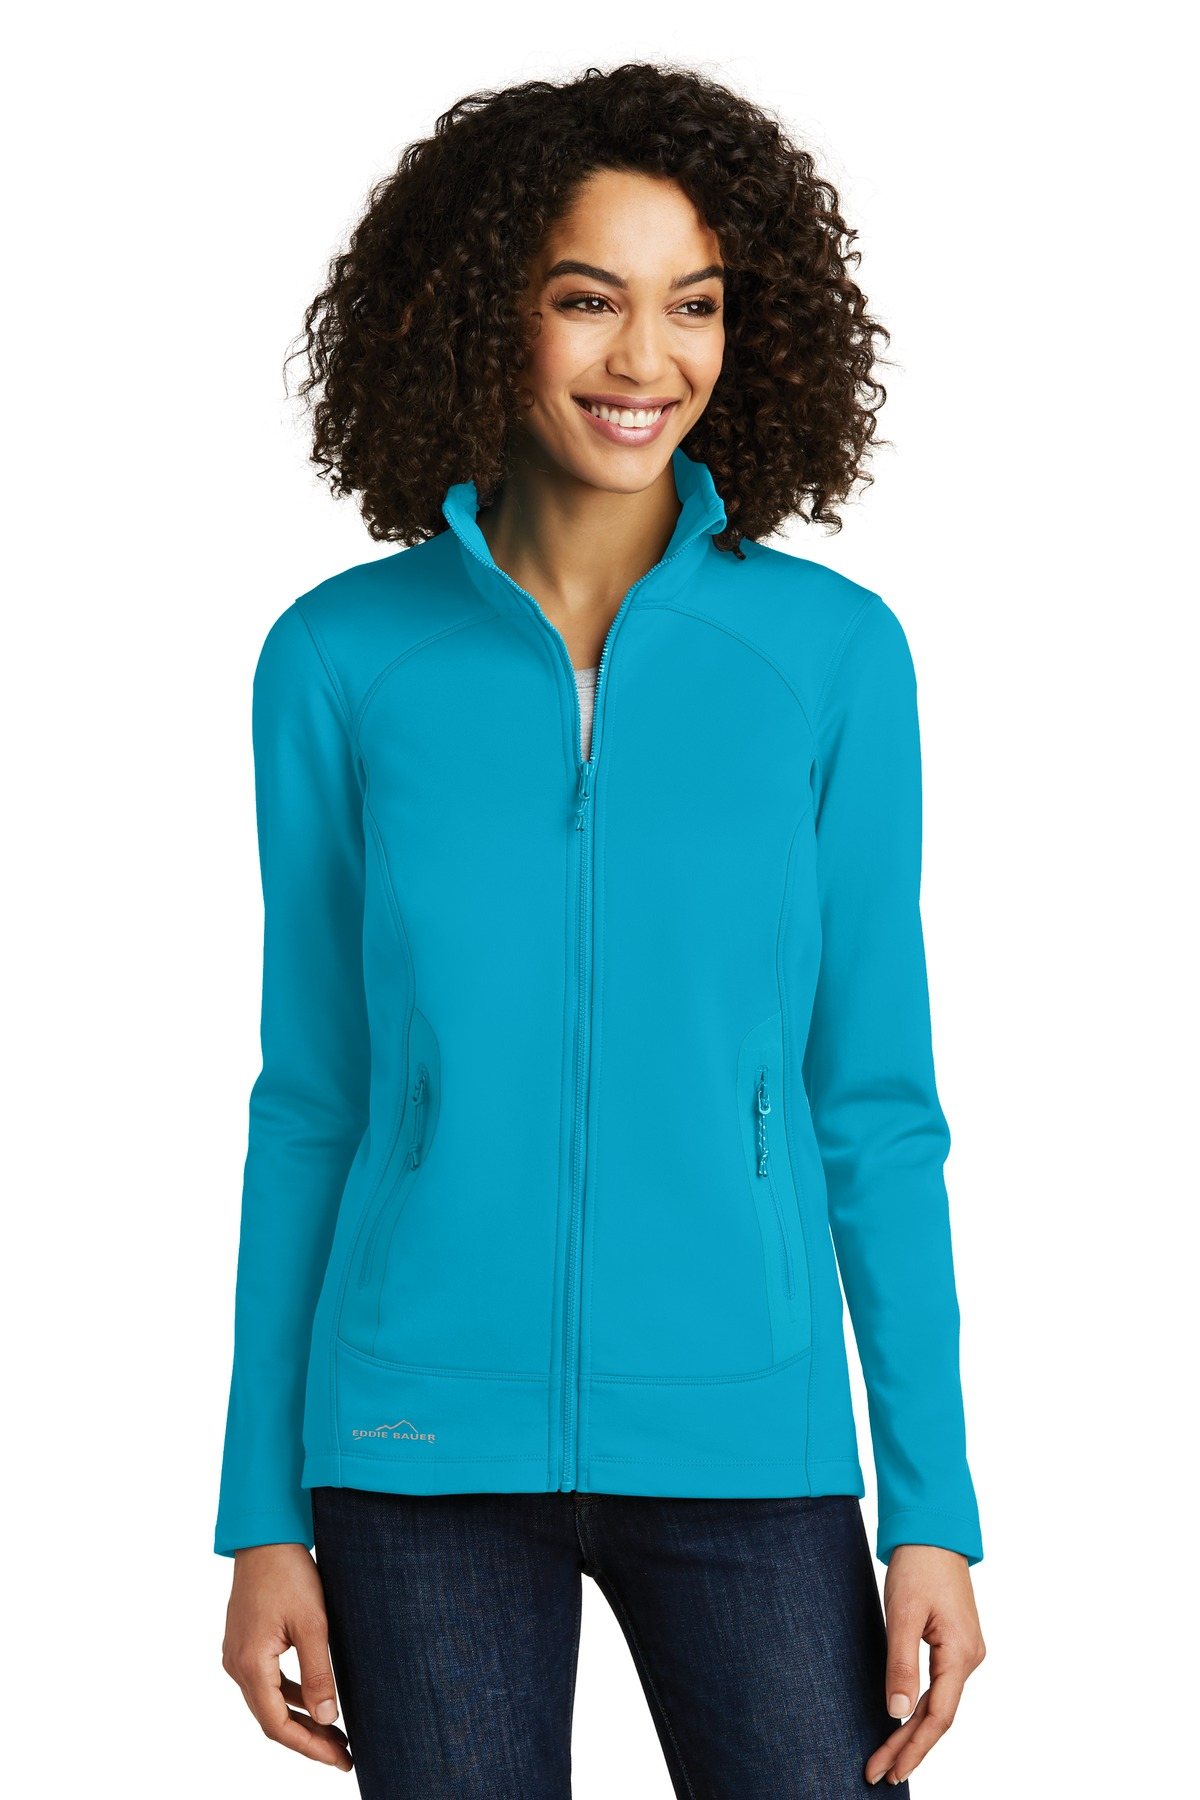 Eddie Bauer® Ladies Highpoint Fleece Jacket.-Eddie Bauer